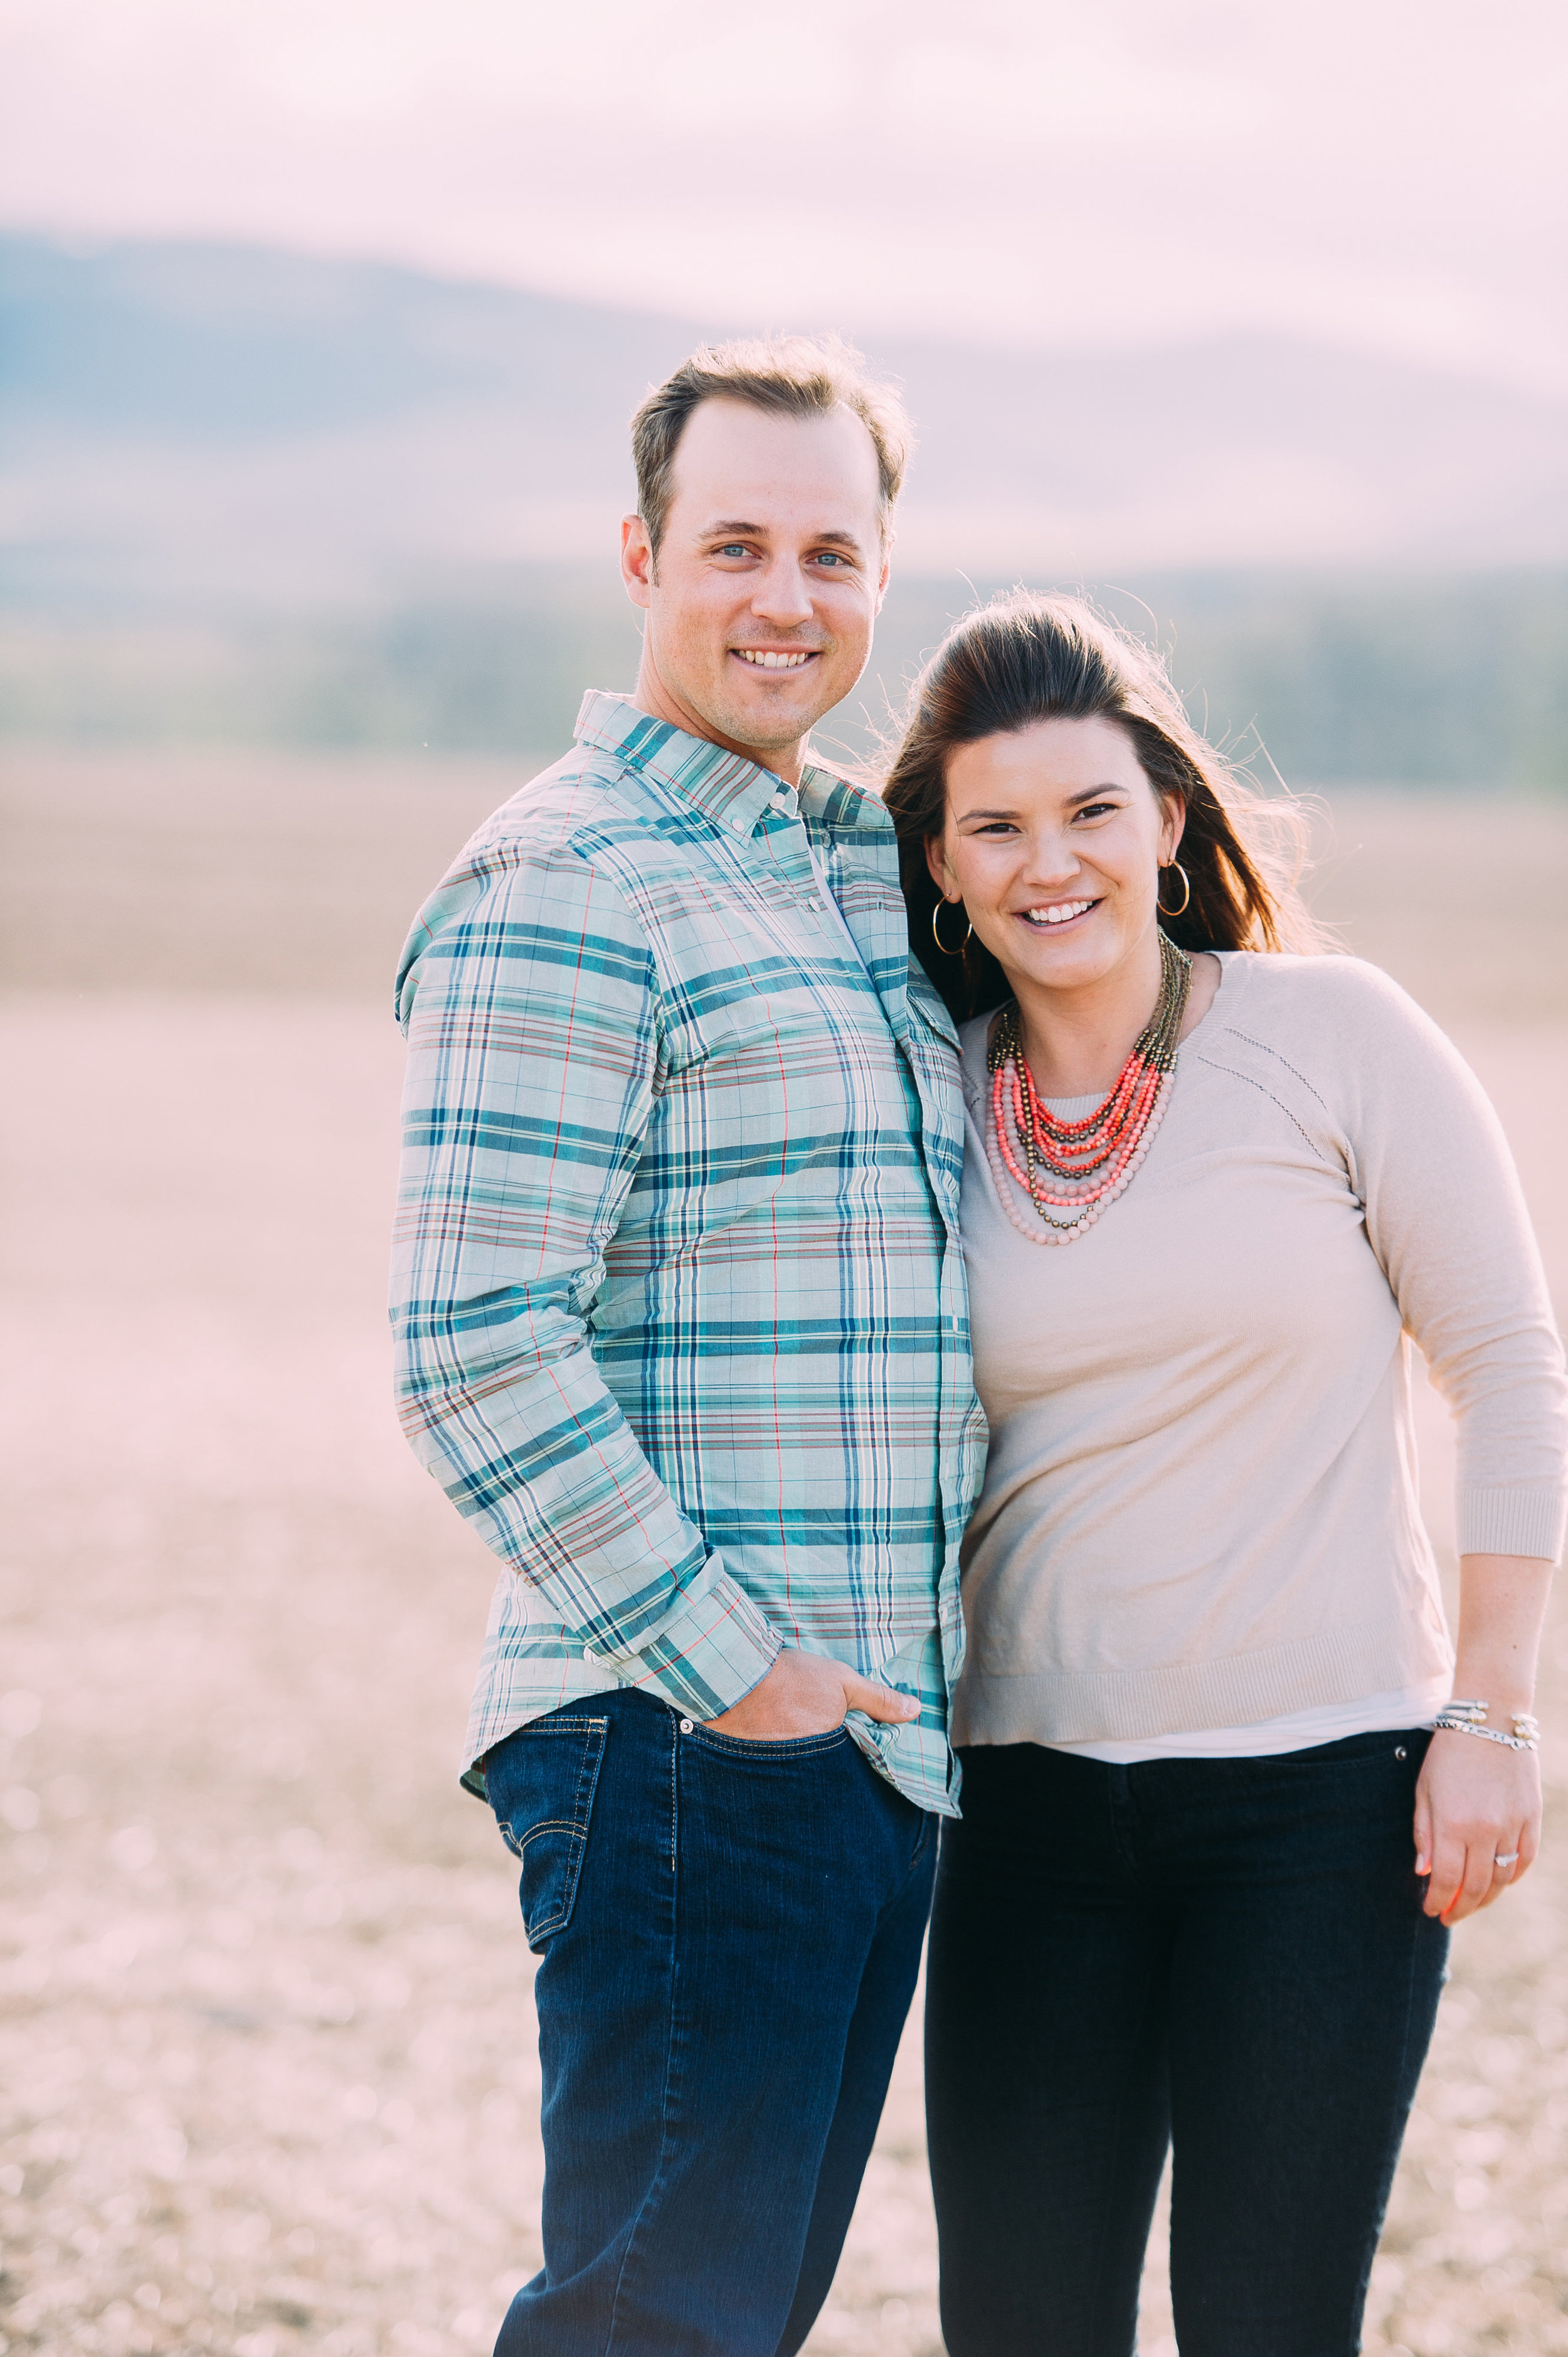 Hi, I'm Jen - And this is my husband Brock.I'm a recovering spendthrift. I fell in love with Brock, a total saver.If I hadn't made some serious changes before we got married, we would have failed.If we could make these changes, so can you.Money is one of the top reasons for divorce. The good news is that it's totally avoidable.Let us show you how!